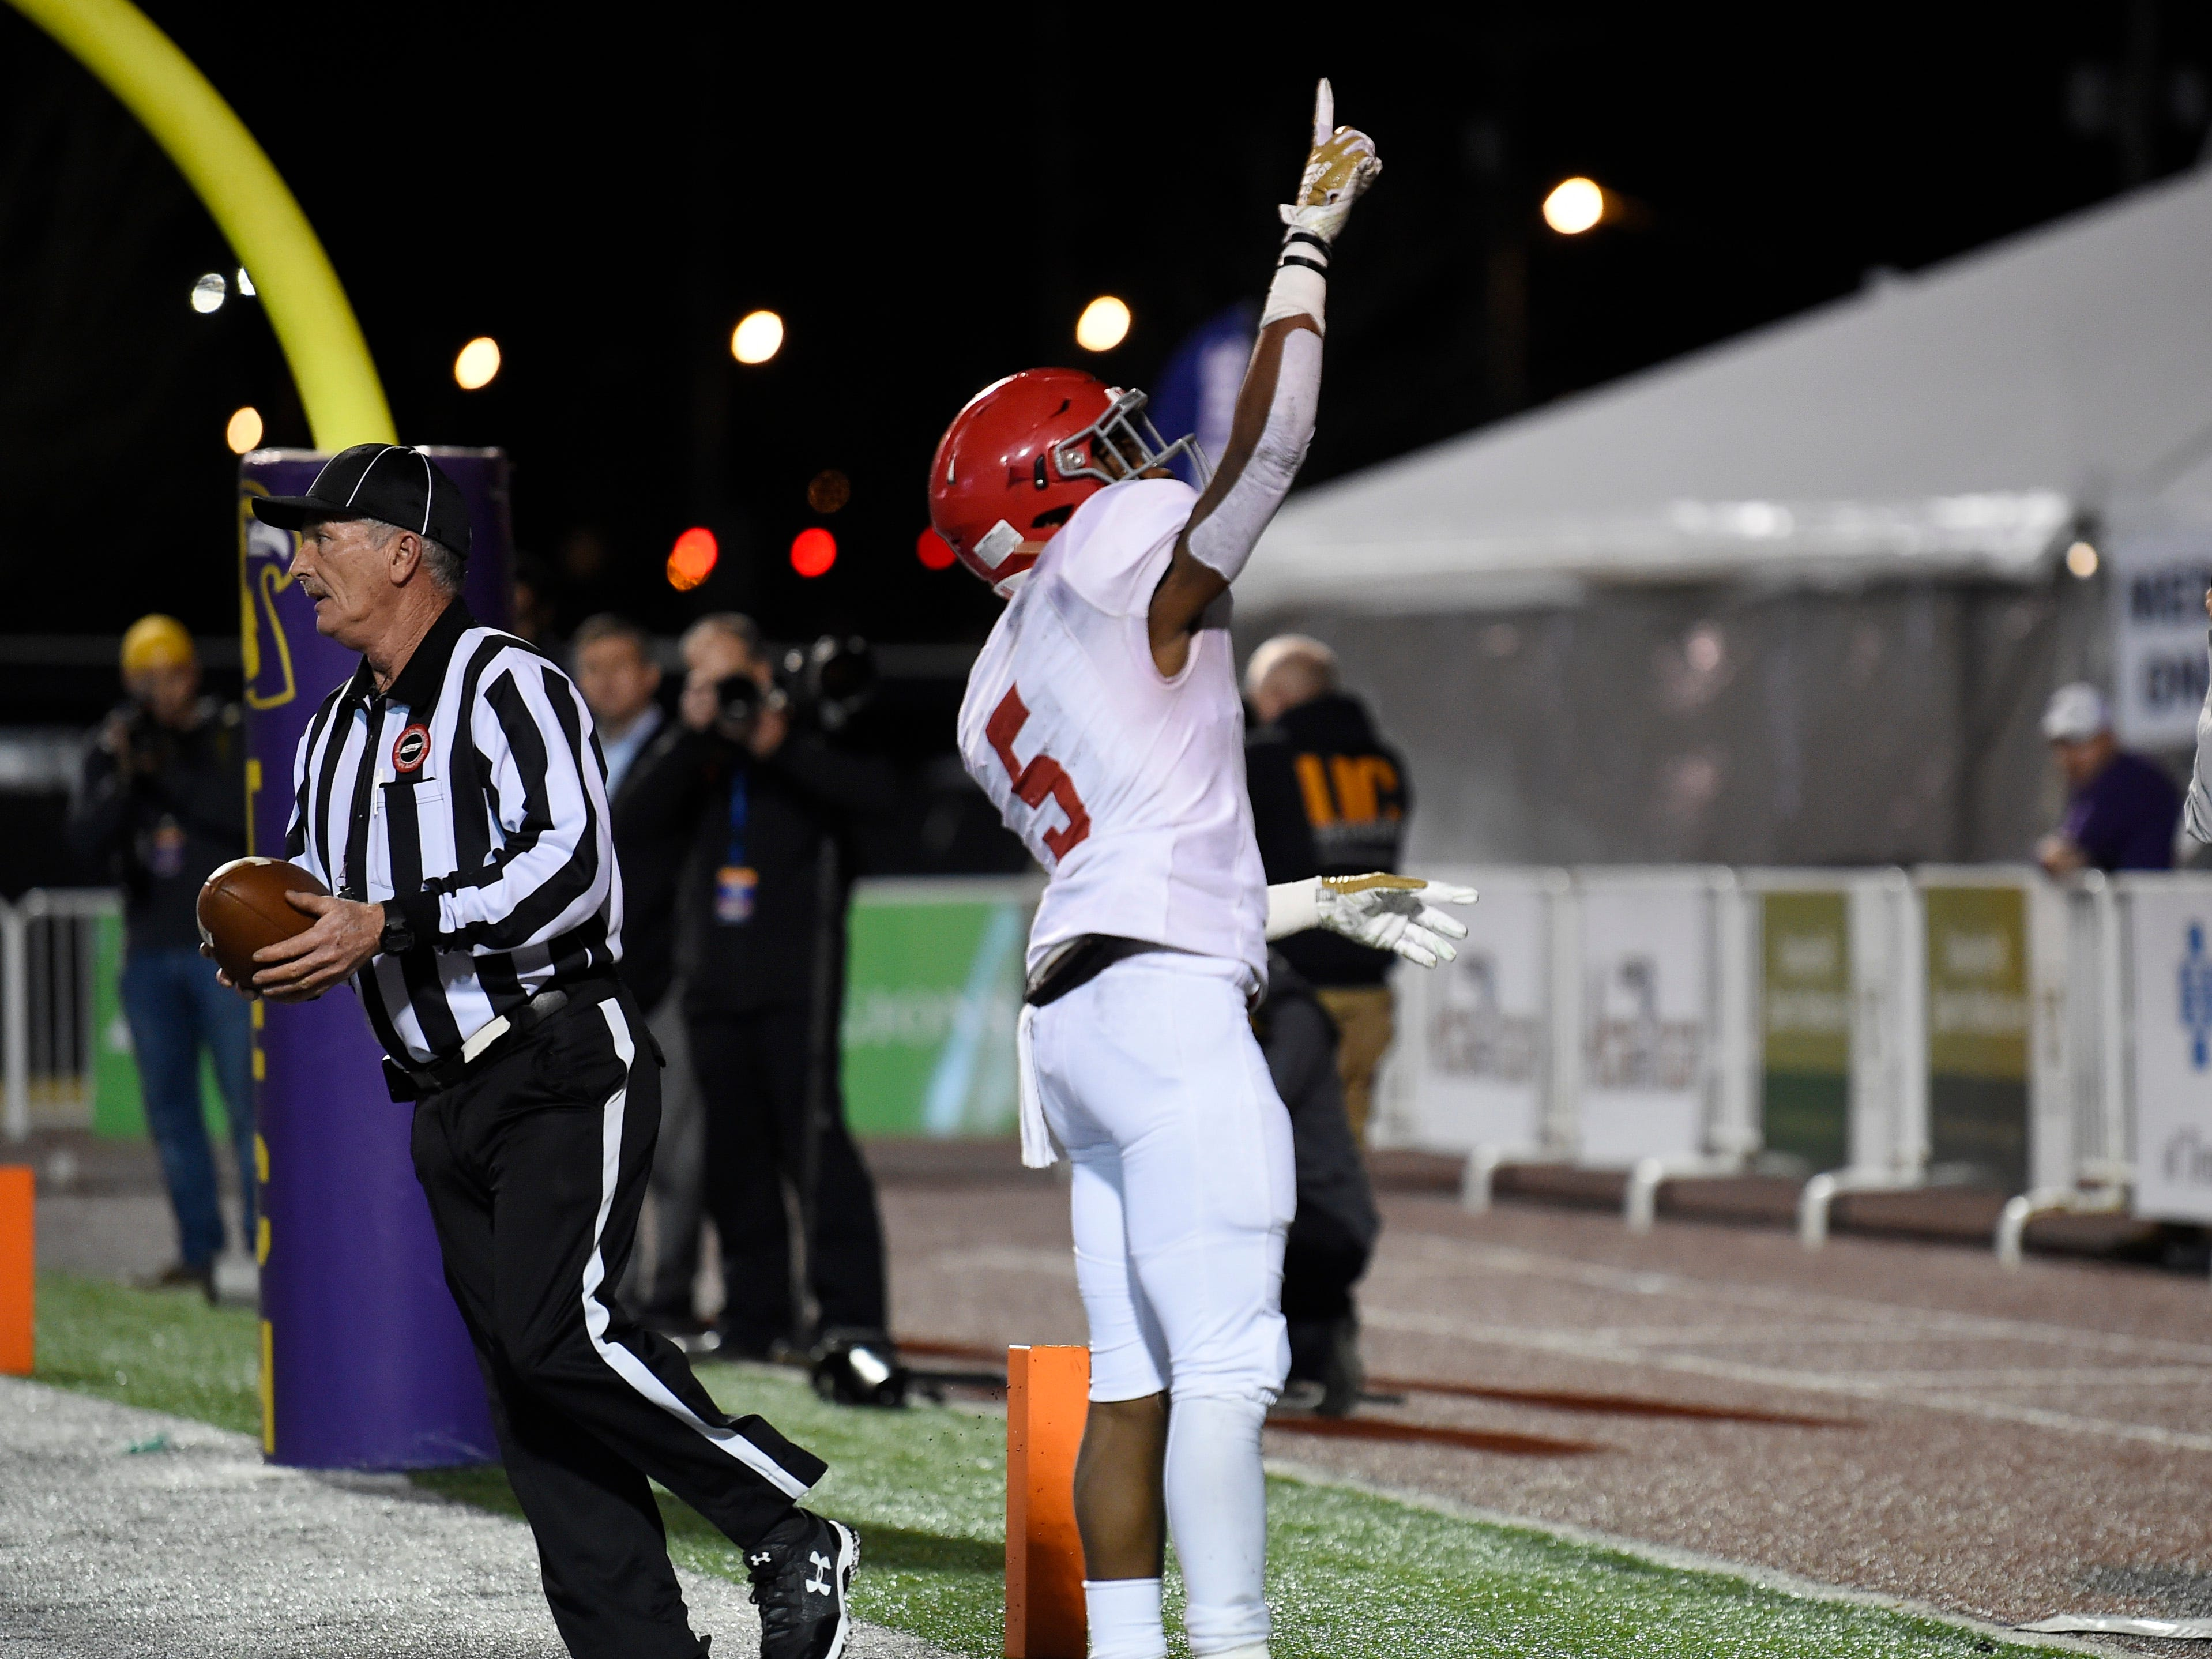 Brentwood Acad. running back Tomario Pleasant (5) celebrates his touchdown in the first quarter at the Division II-AAA BlueCross Bowl state championship at Tennessee Tech's Tucker Stadium in Cookeville, Tenn., on Friday, Nov. 30, 2018.